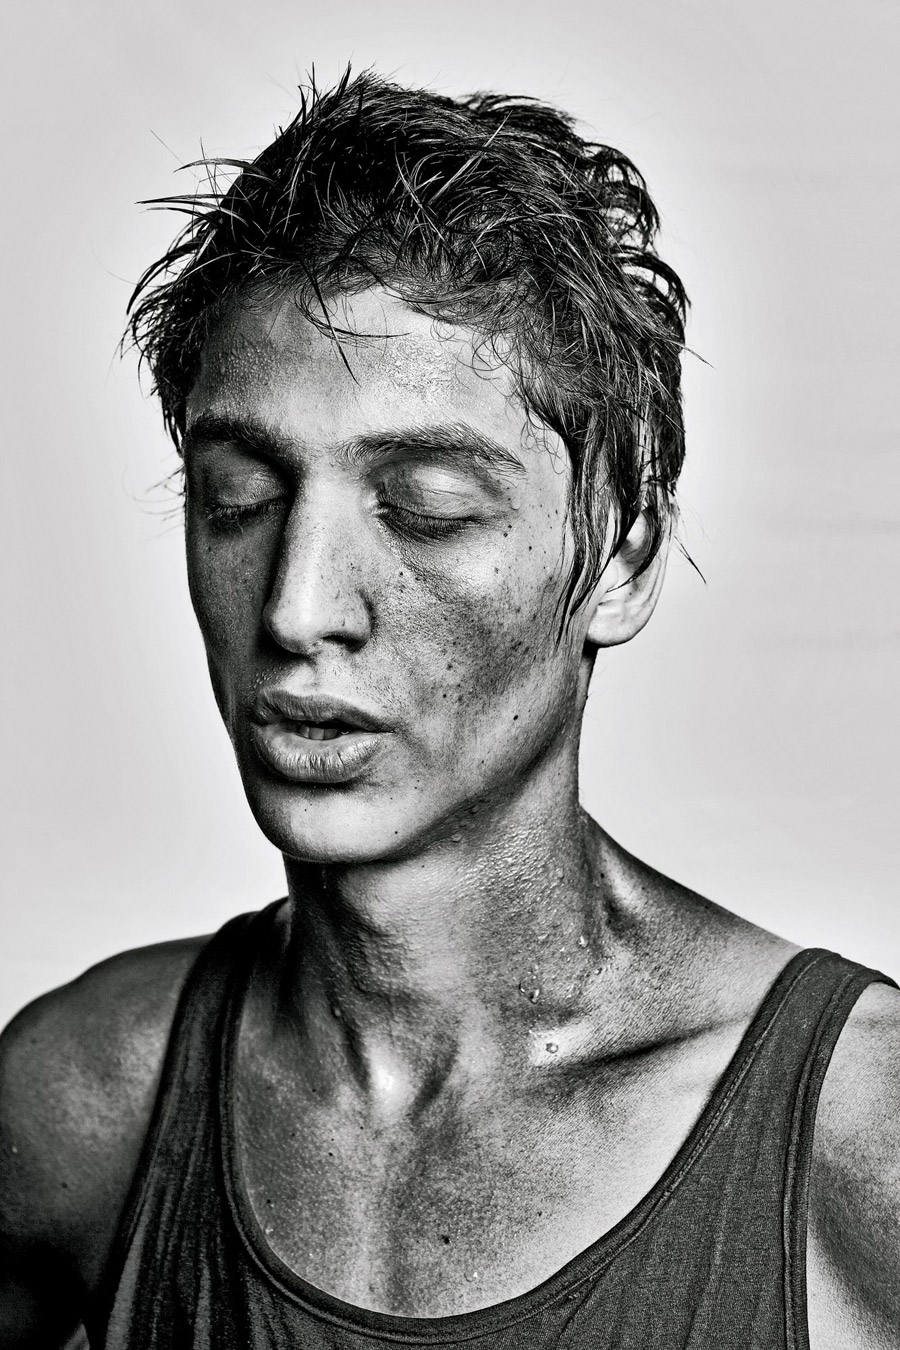 The Fighter, © Luiz Maximiano, Brazil, Finalists, LensCulture Portrait Awards